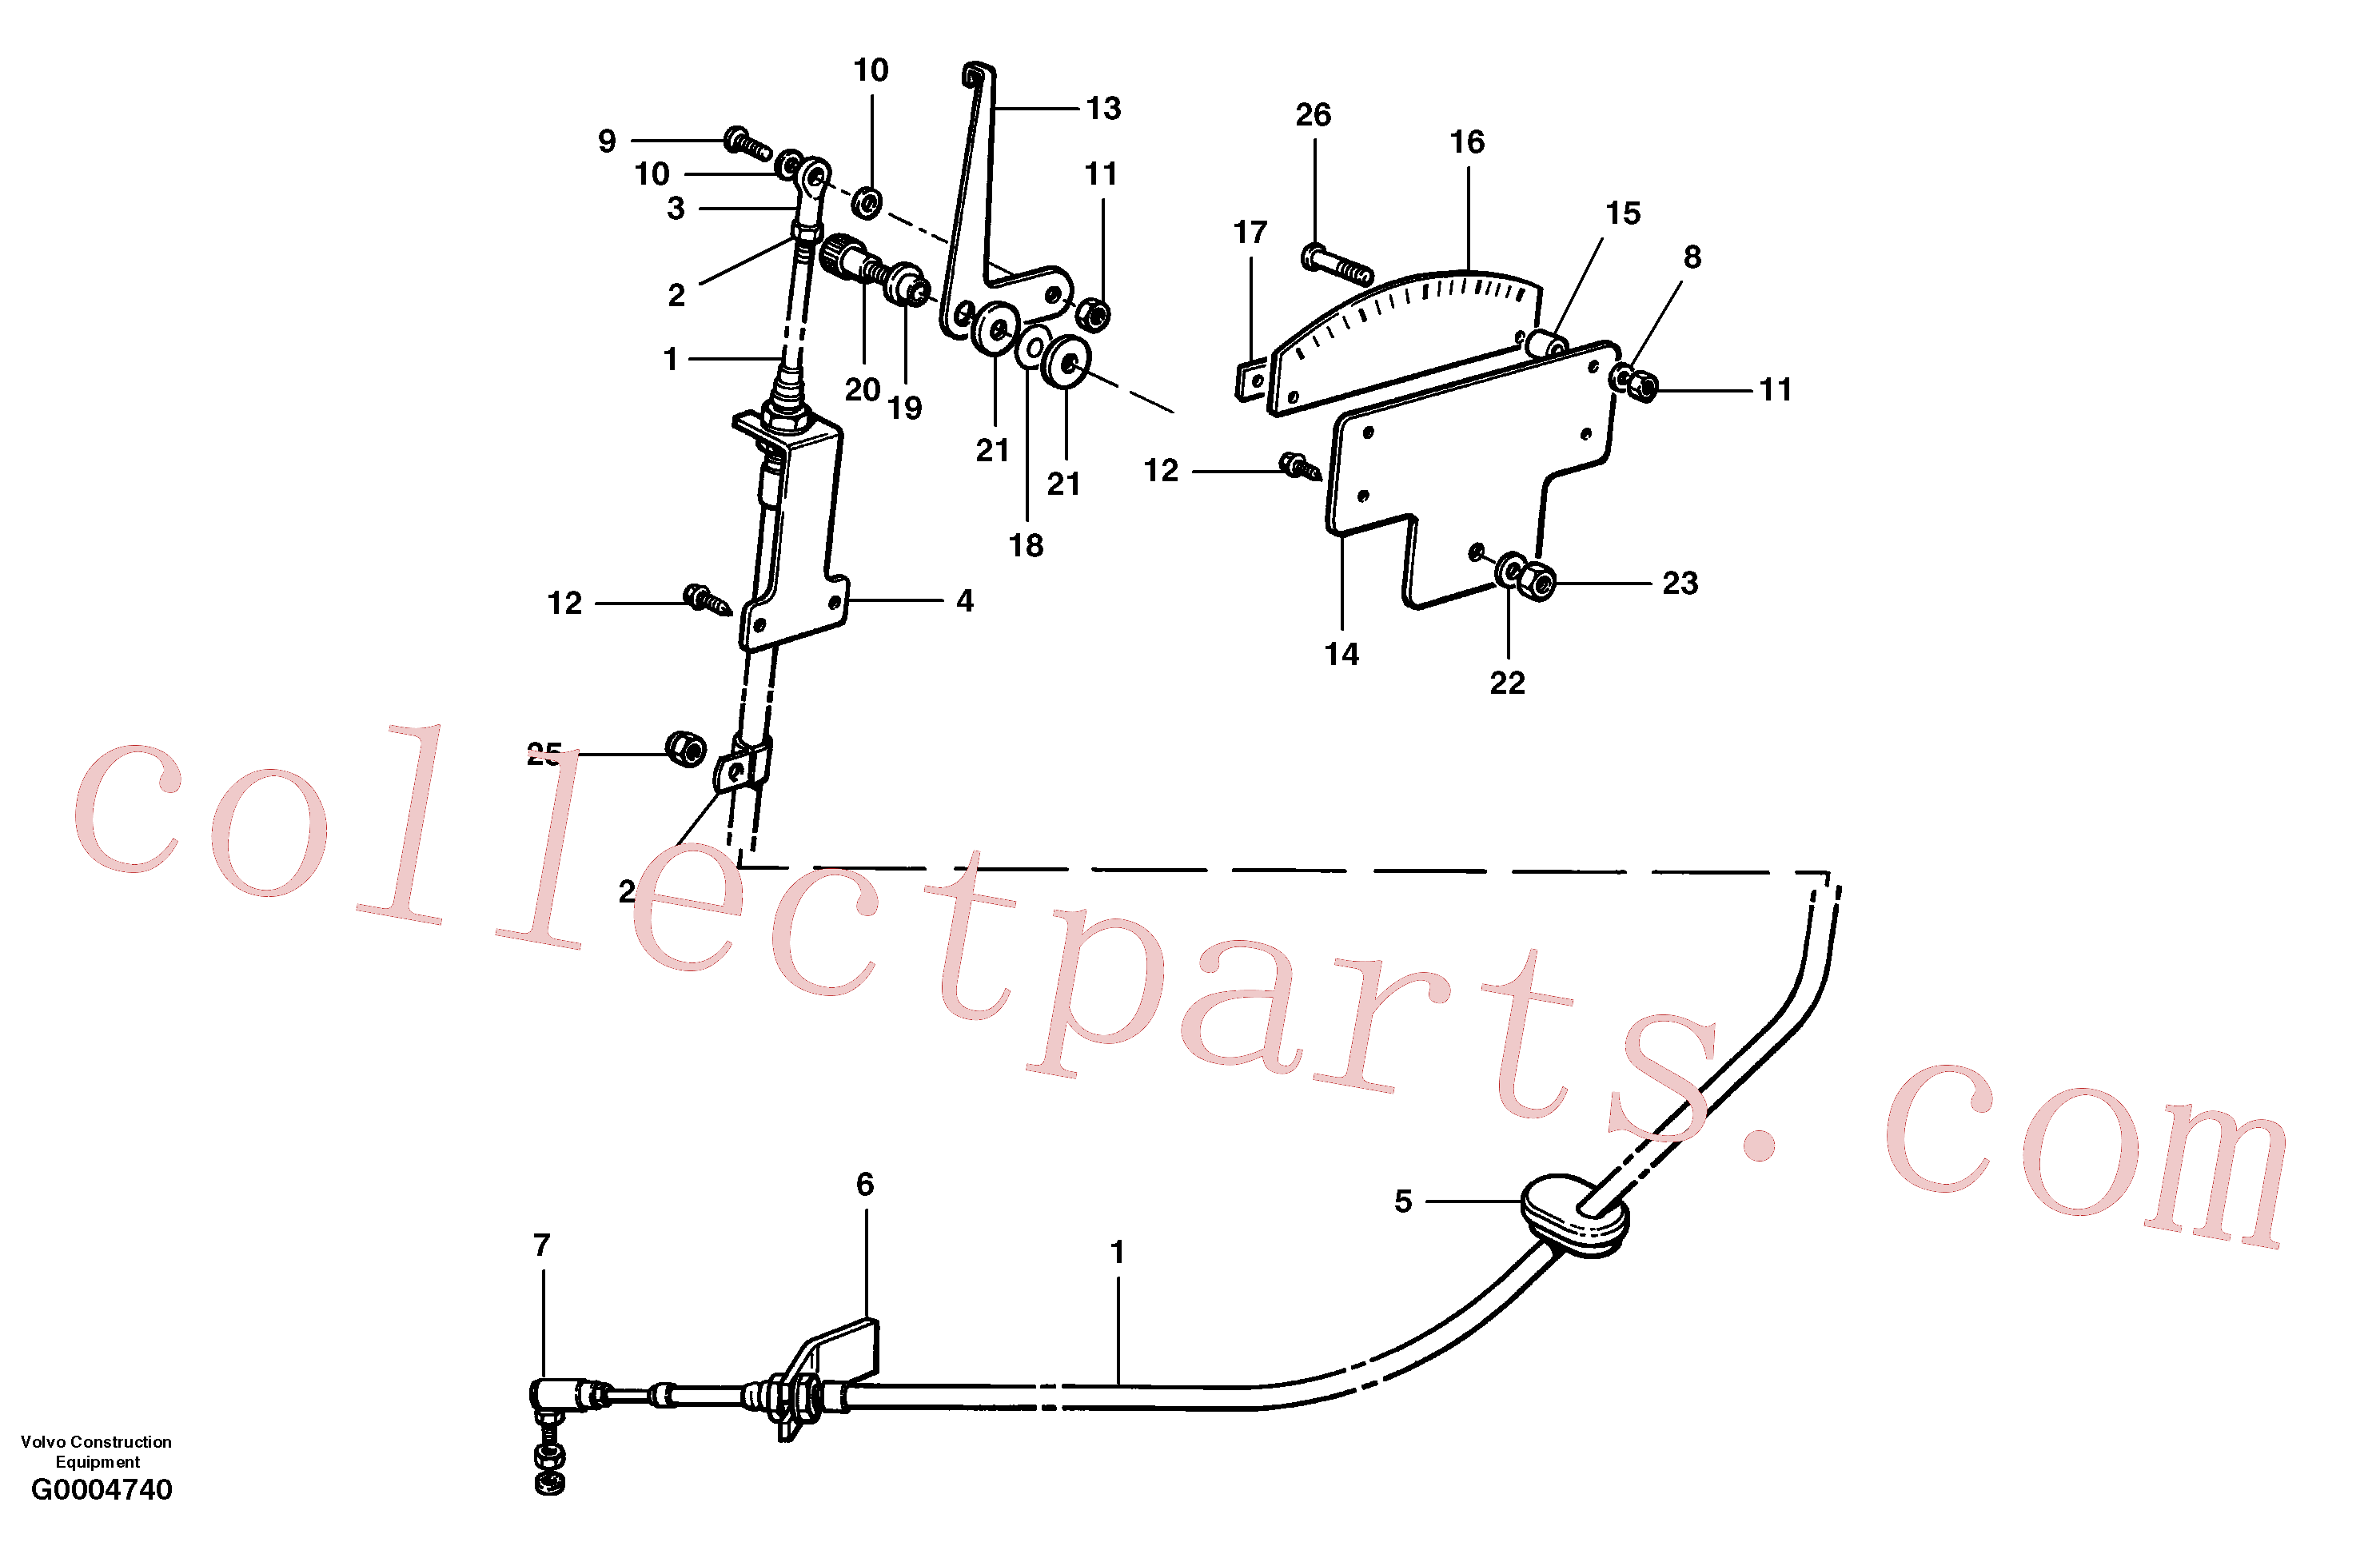 CH32316 for Volvo Articulation indicator(G0004740 assembly)